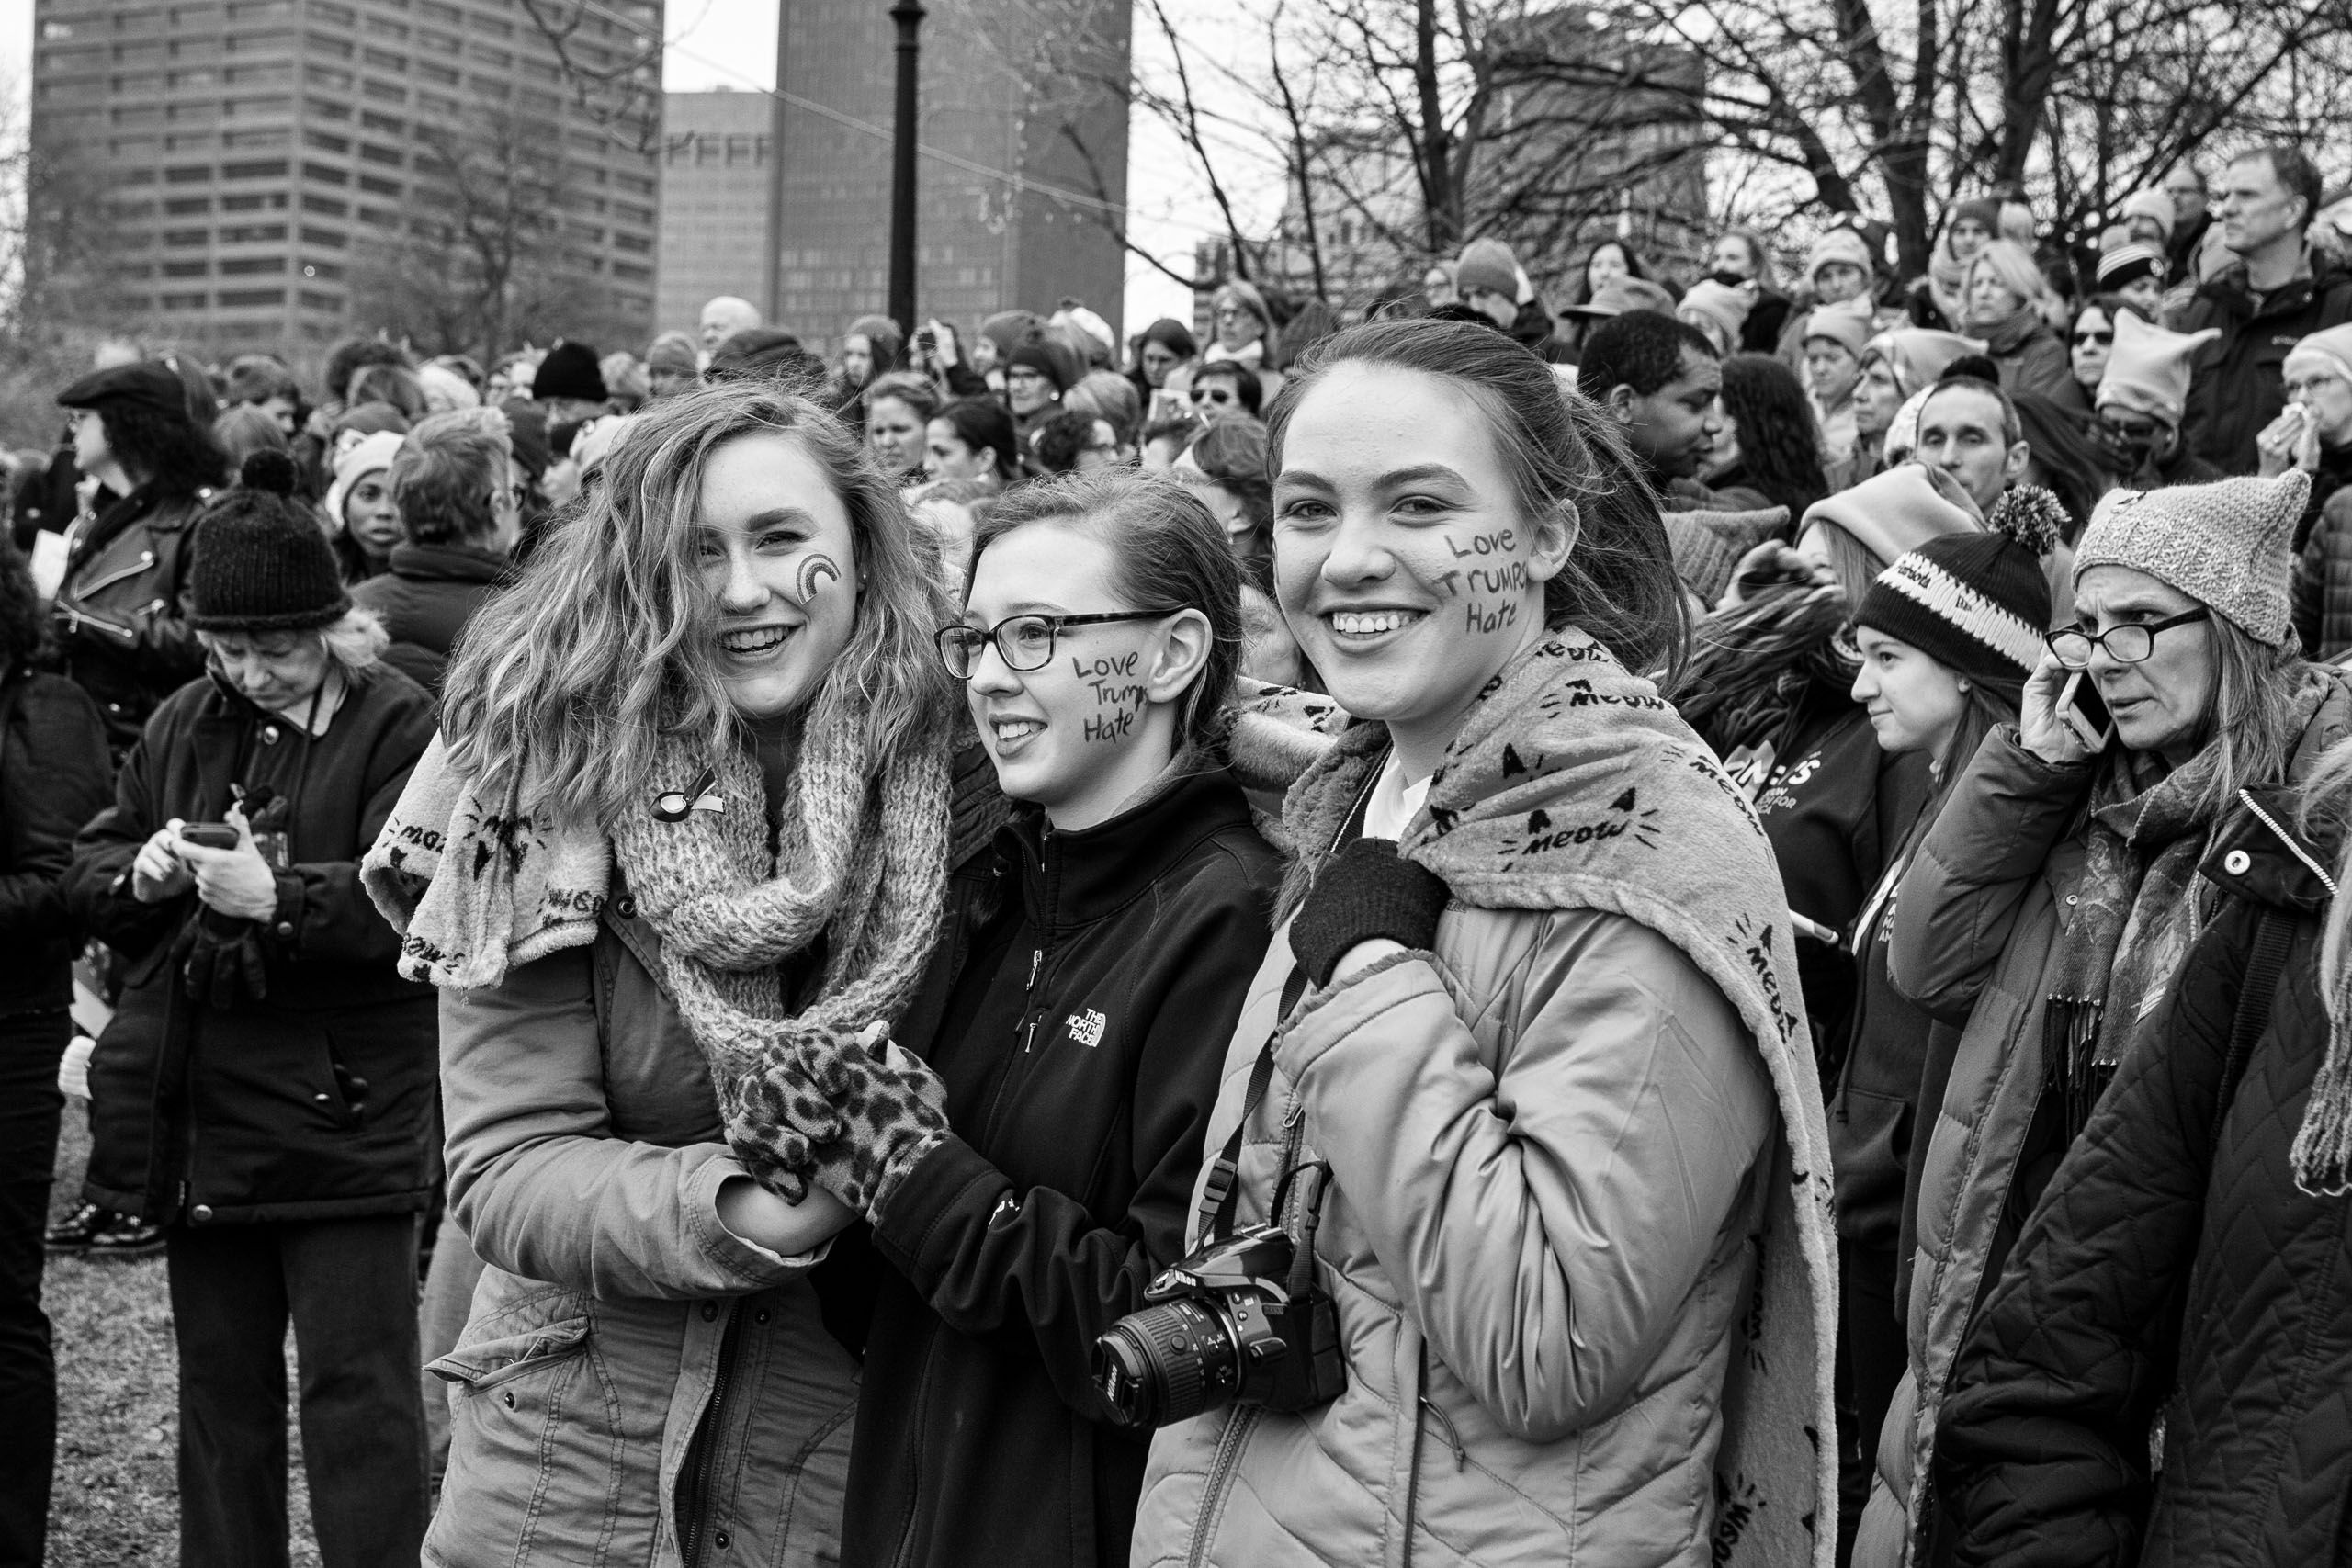 BostonWomensMarch - 20170121-2230-Edit.jpg